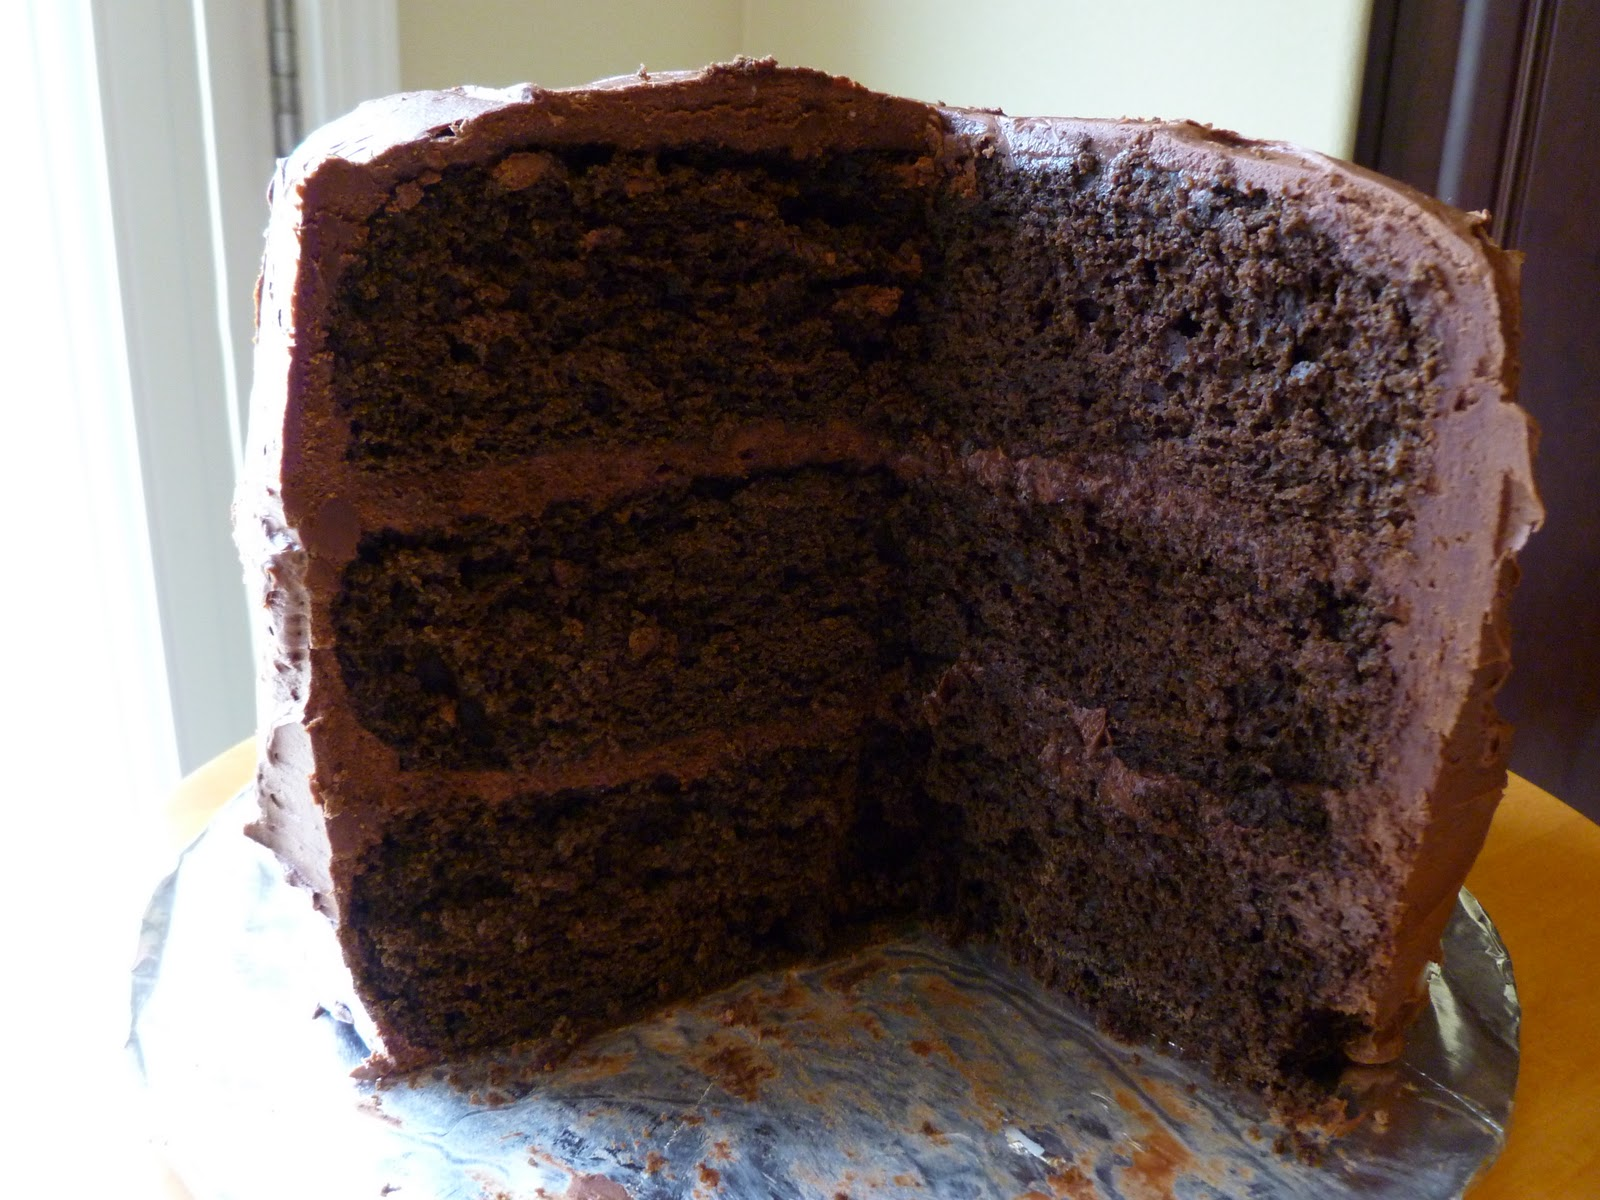 The Pastry Chef's Baking: Devil's Food Cake with Chocolate Buttercream